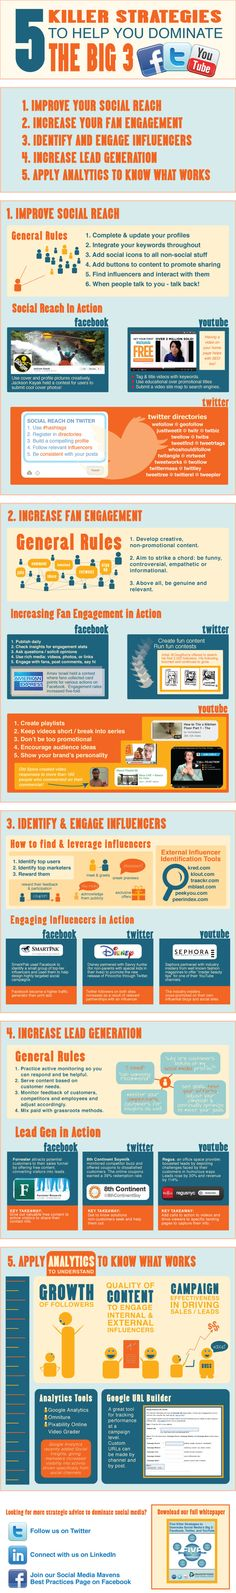 Basic tips (but still good) Social Media infographic